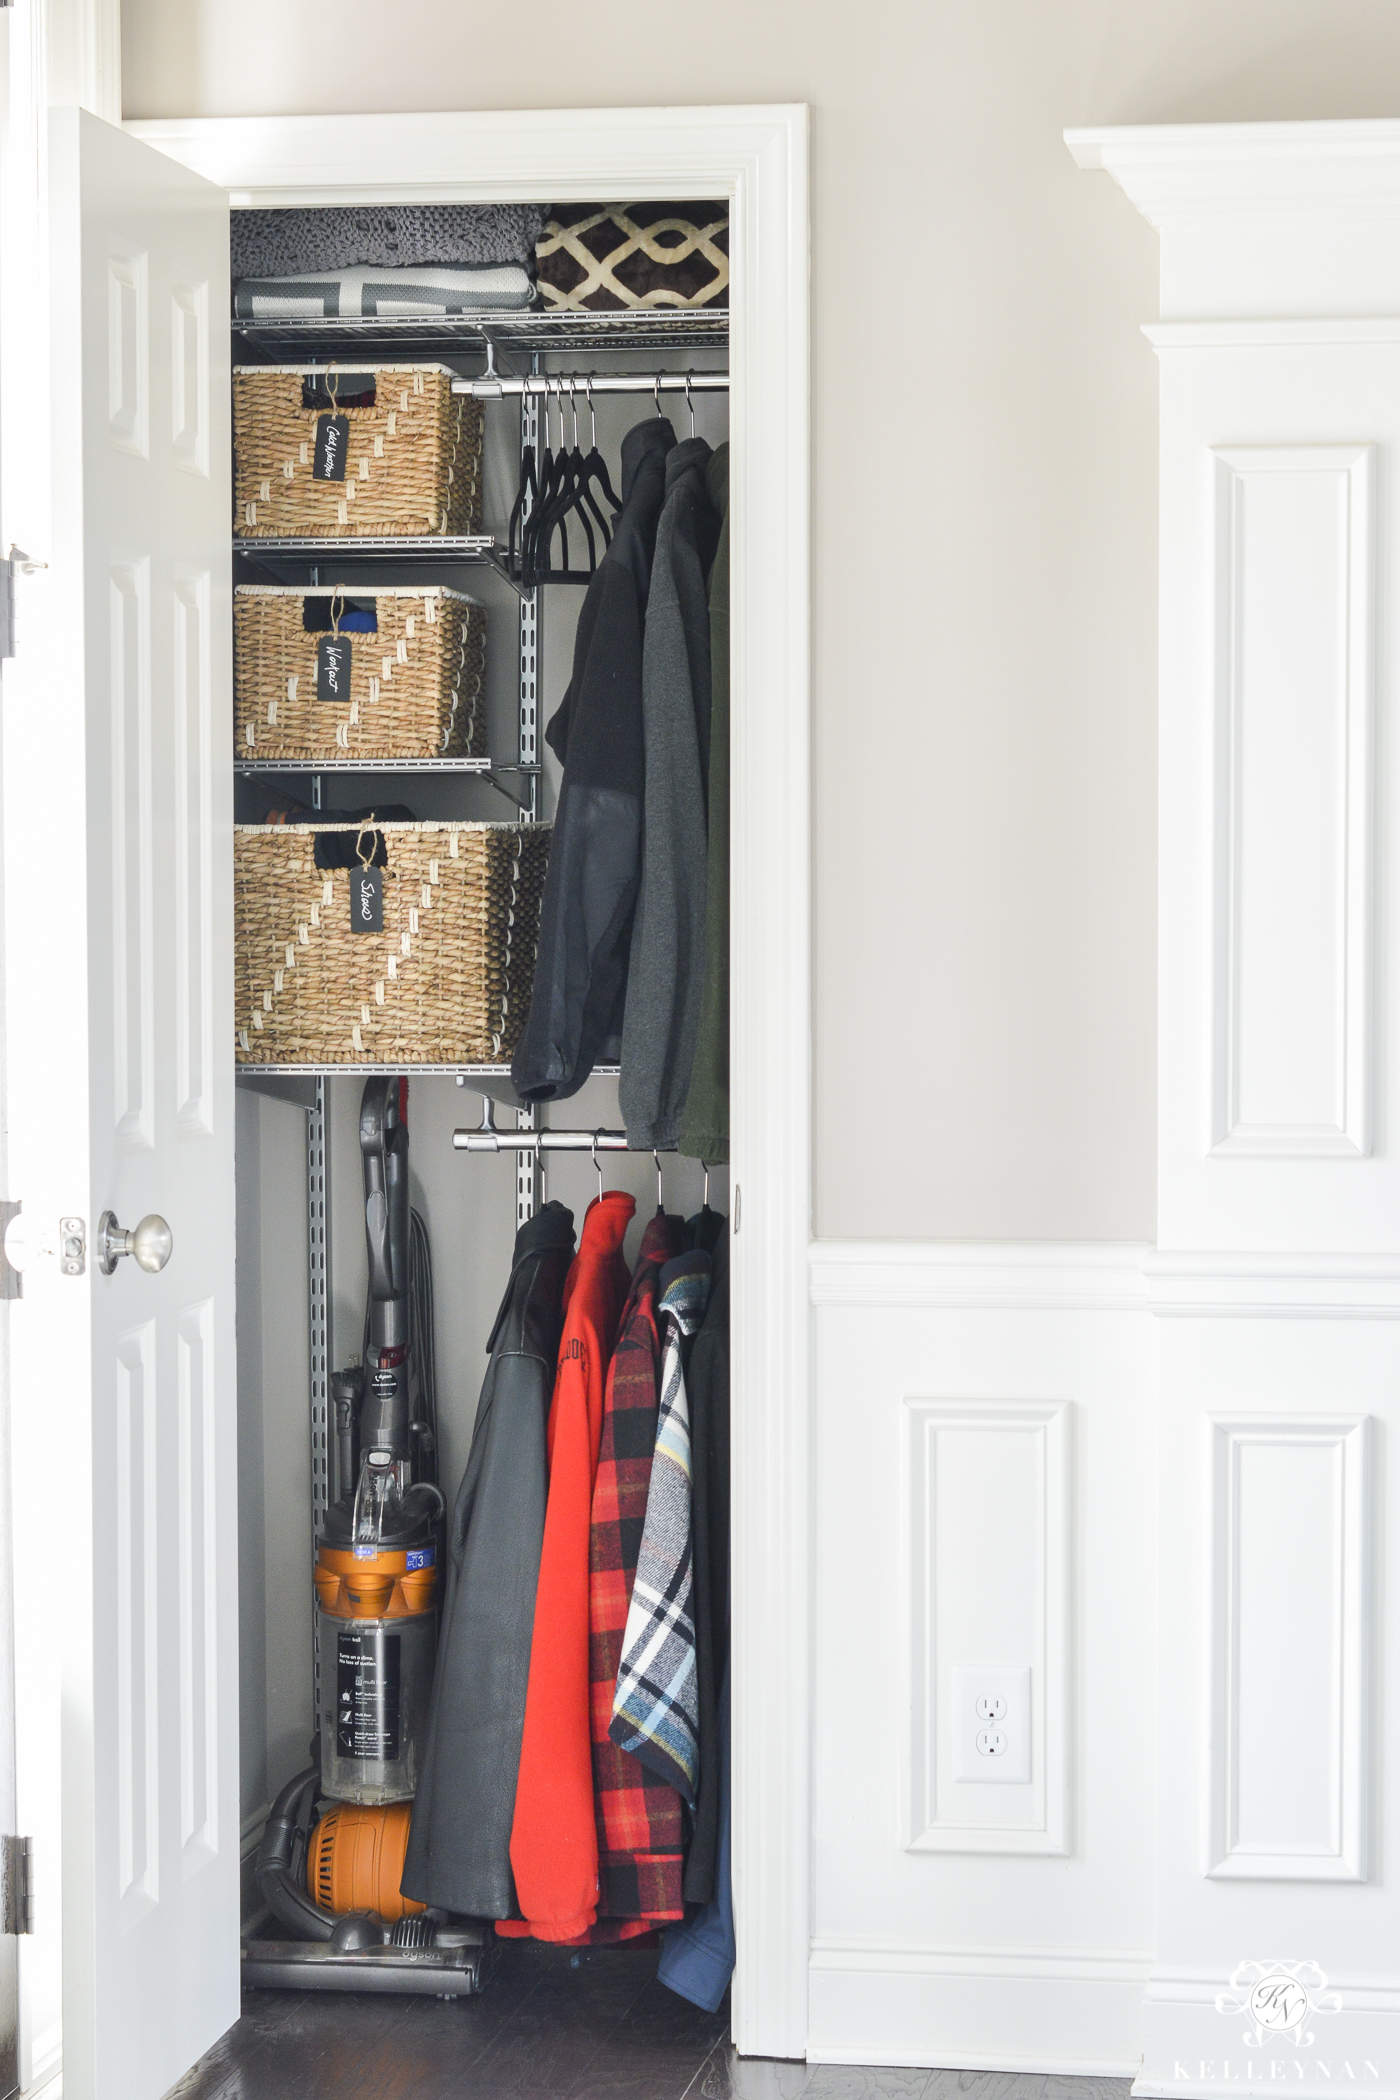 Entry Foyer Closet : Organized foyer coat closet before and after makeover